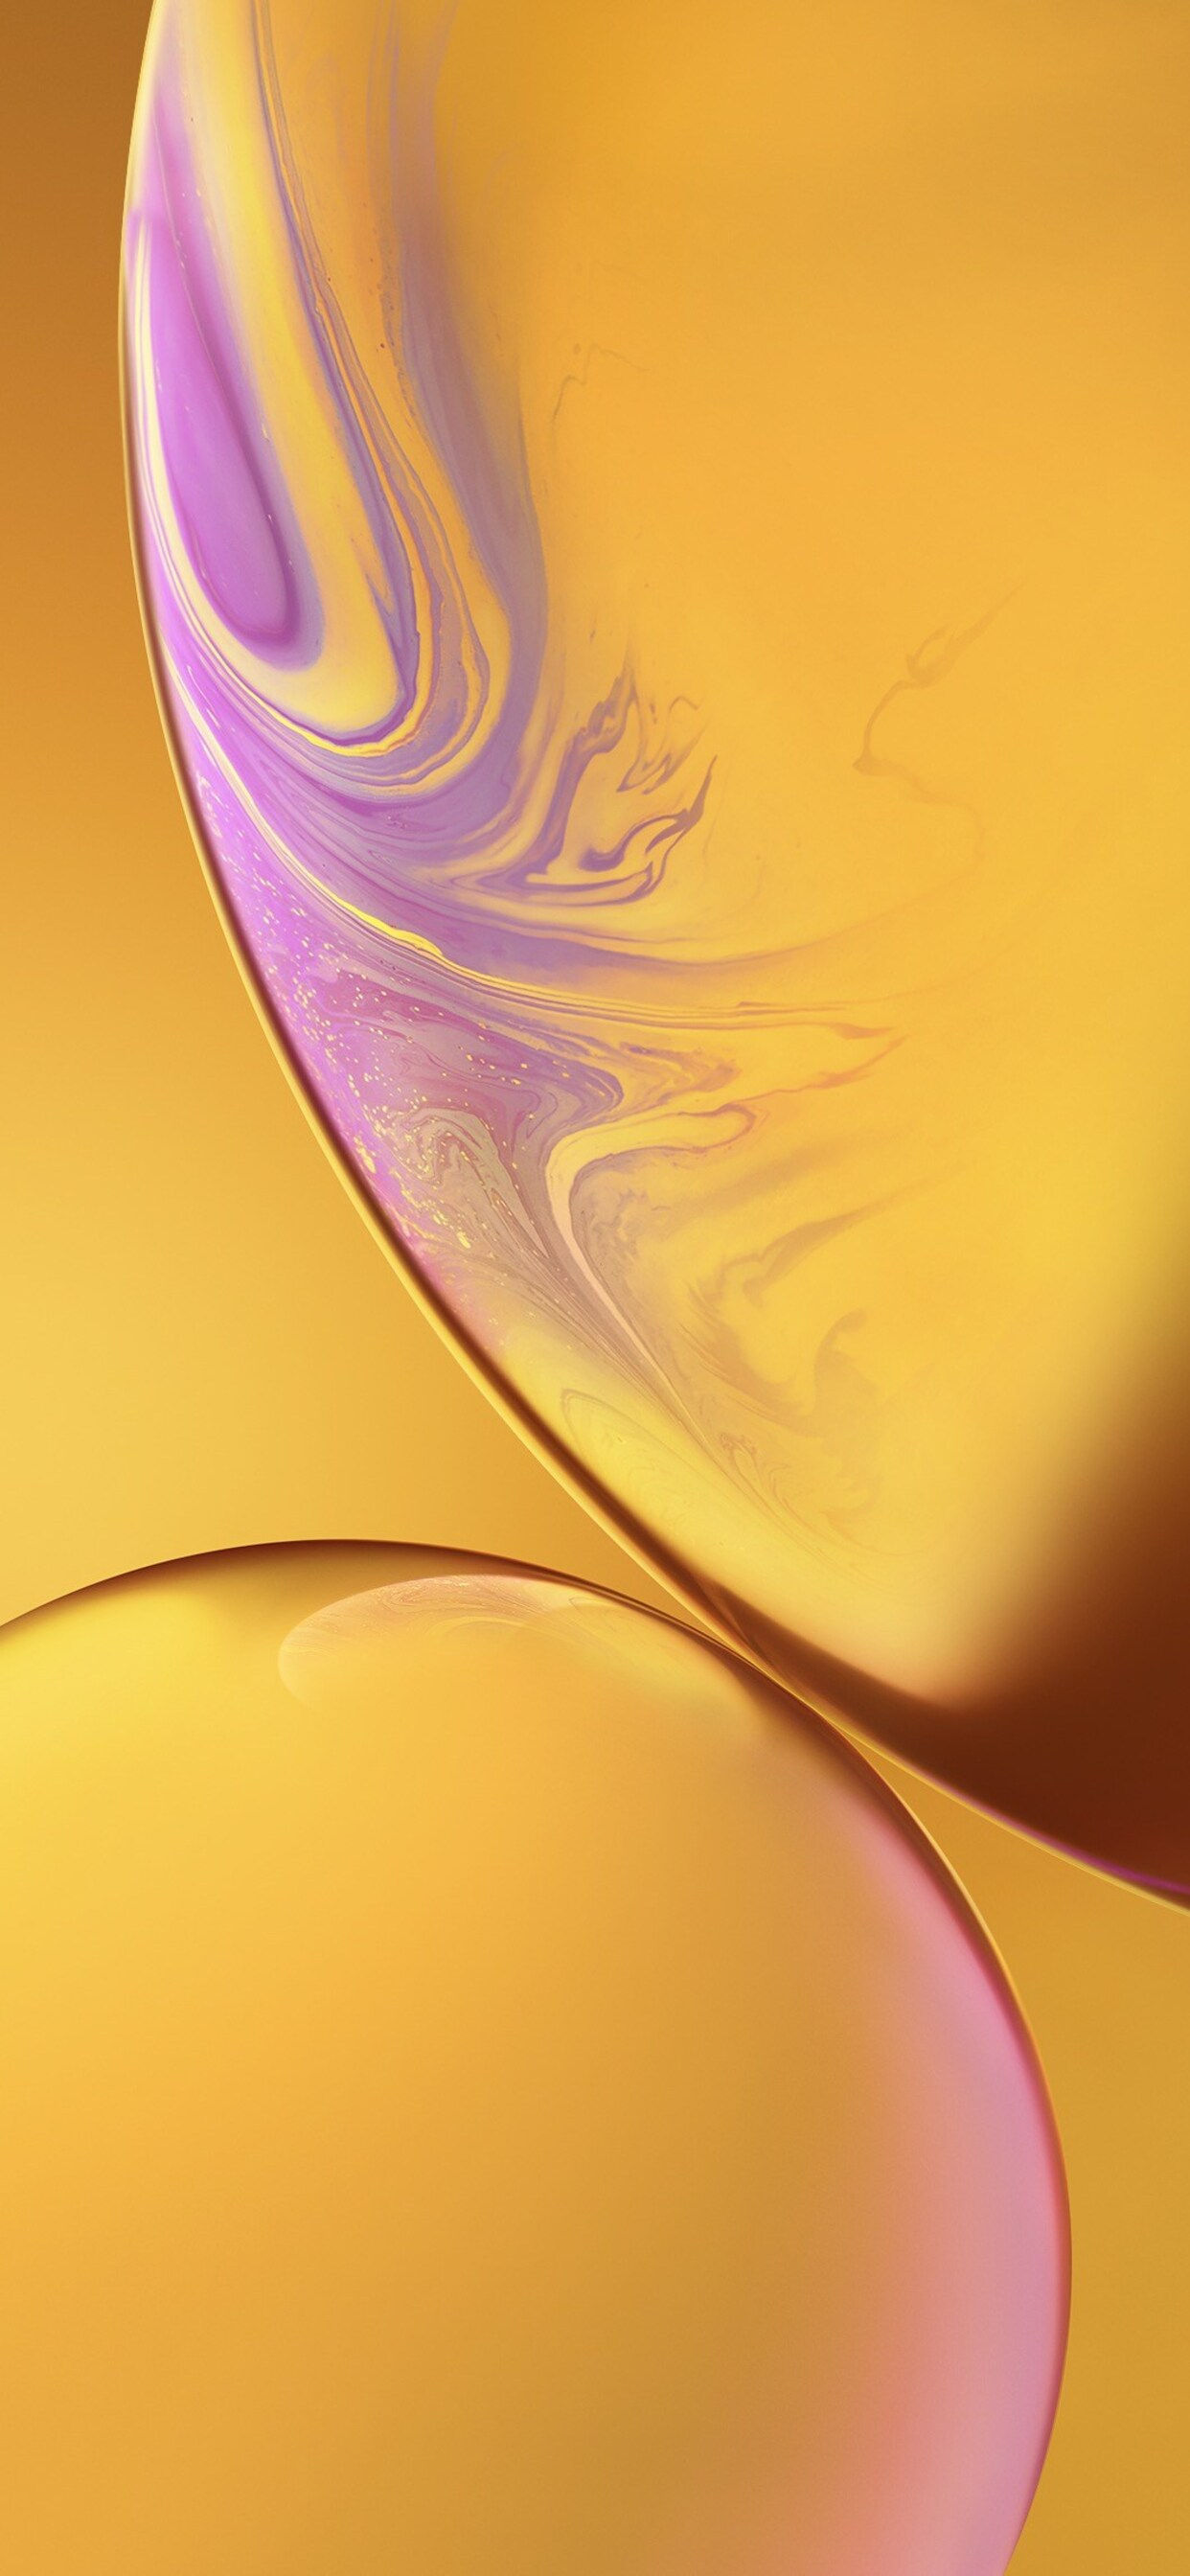 1242x2688 Iphone Xs Double Bubble Yellow Ios 12 Iphone Xs Max Hd 4k Wallpapers Images Backgrounds Photos And Pictures